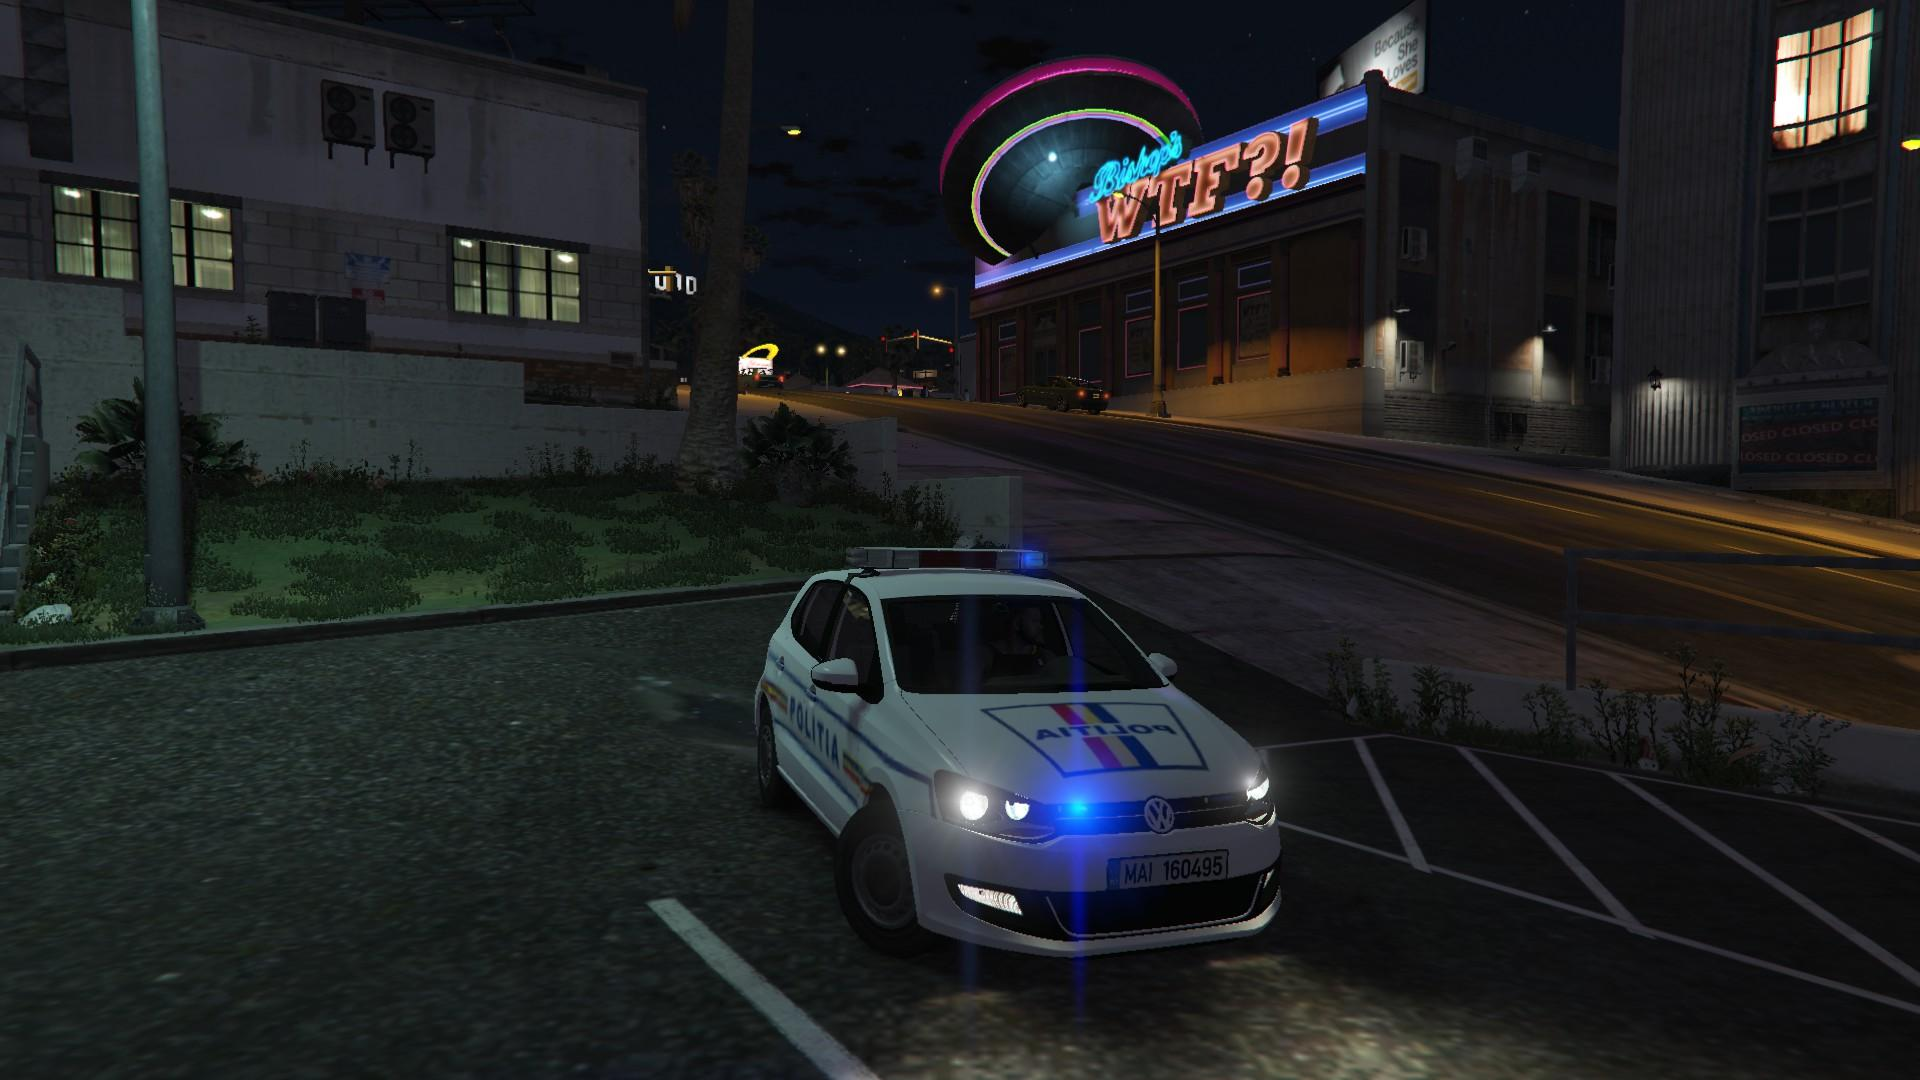 volkswagen polo mk5 politia romana romanian police gta5. Black Bedroom Furniture Sets. Home Design Ideas